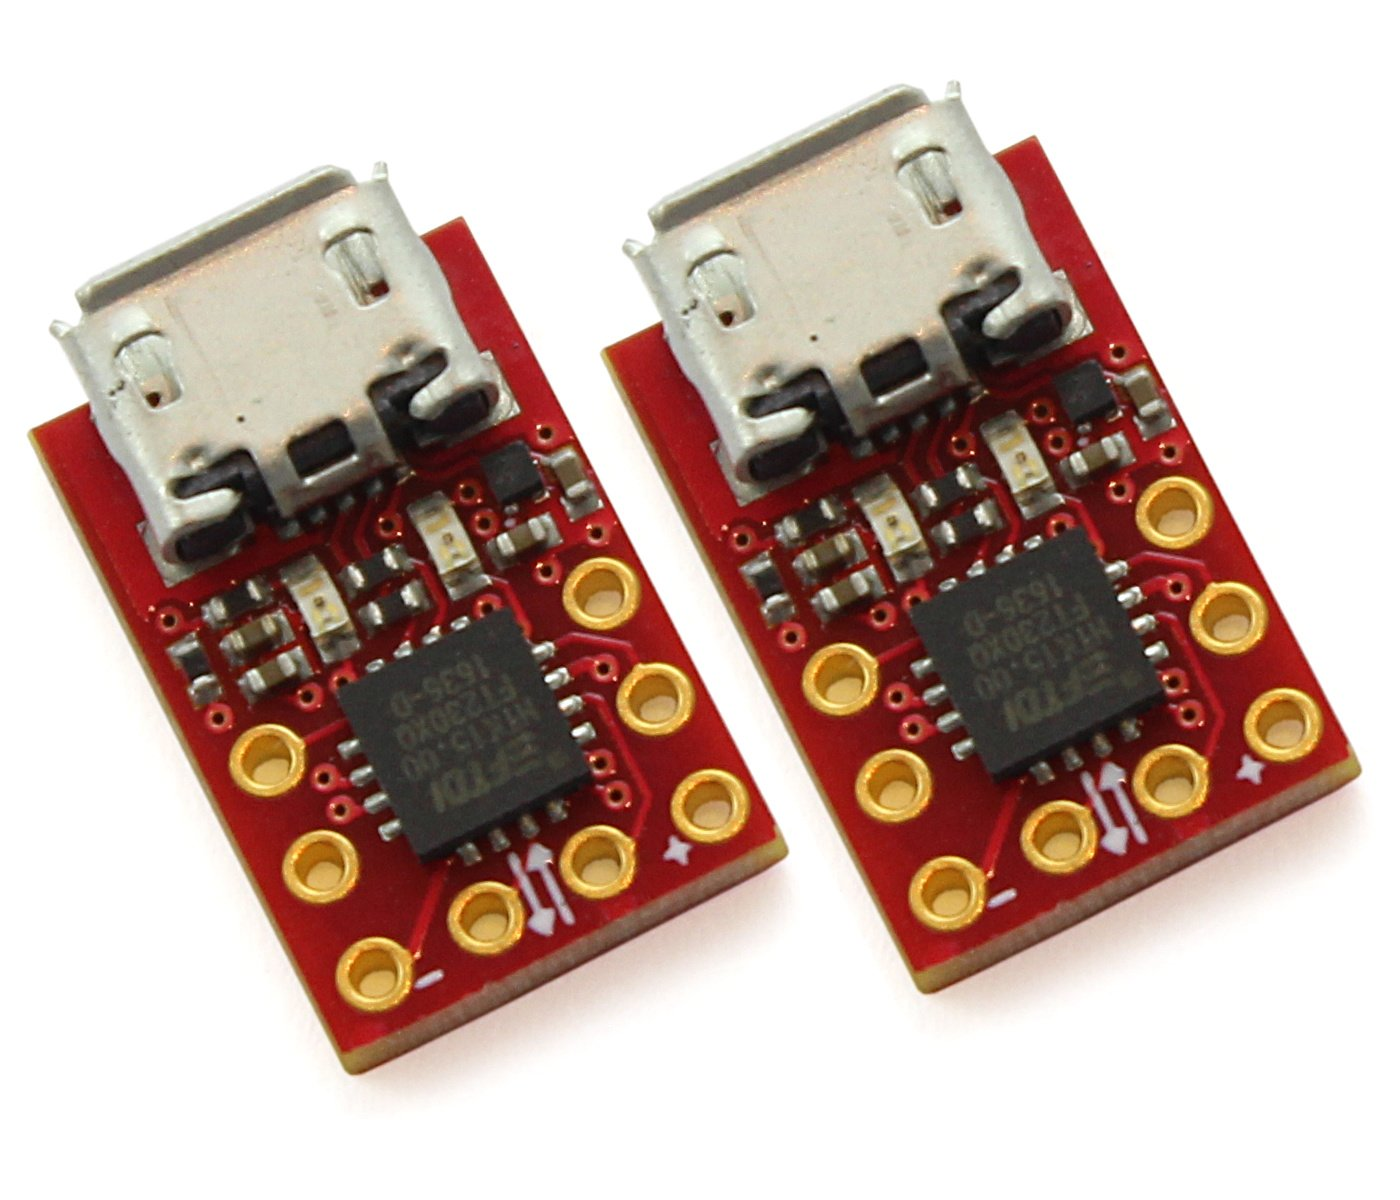 Micro1v8 (2-Pack) - USB to 1.8V Serial Adapter with LEDs - FTDI FT230X chip